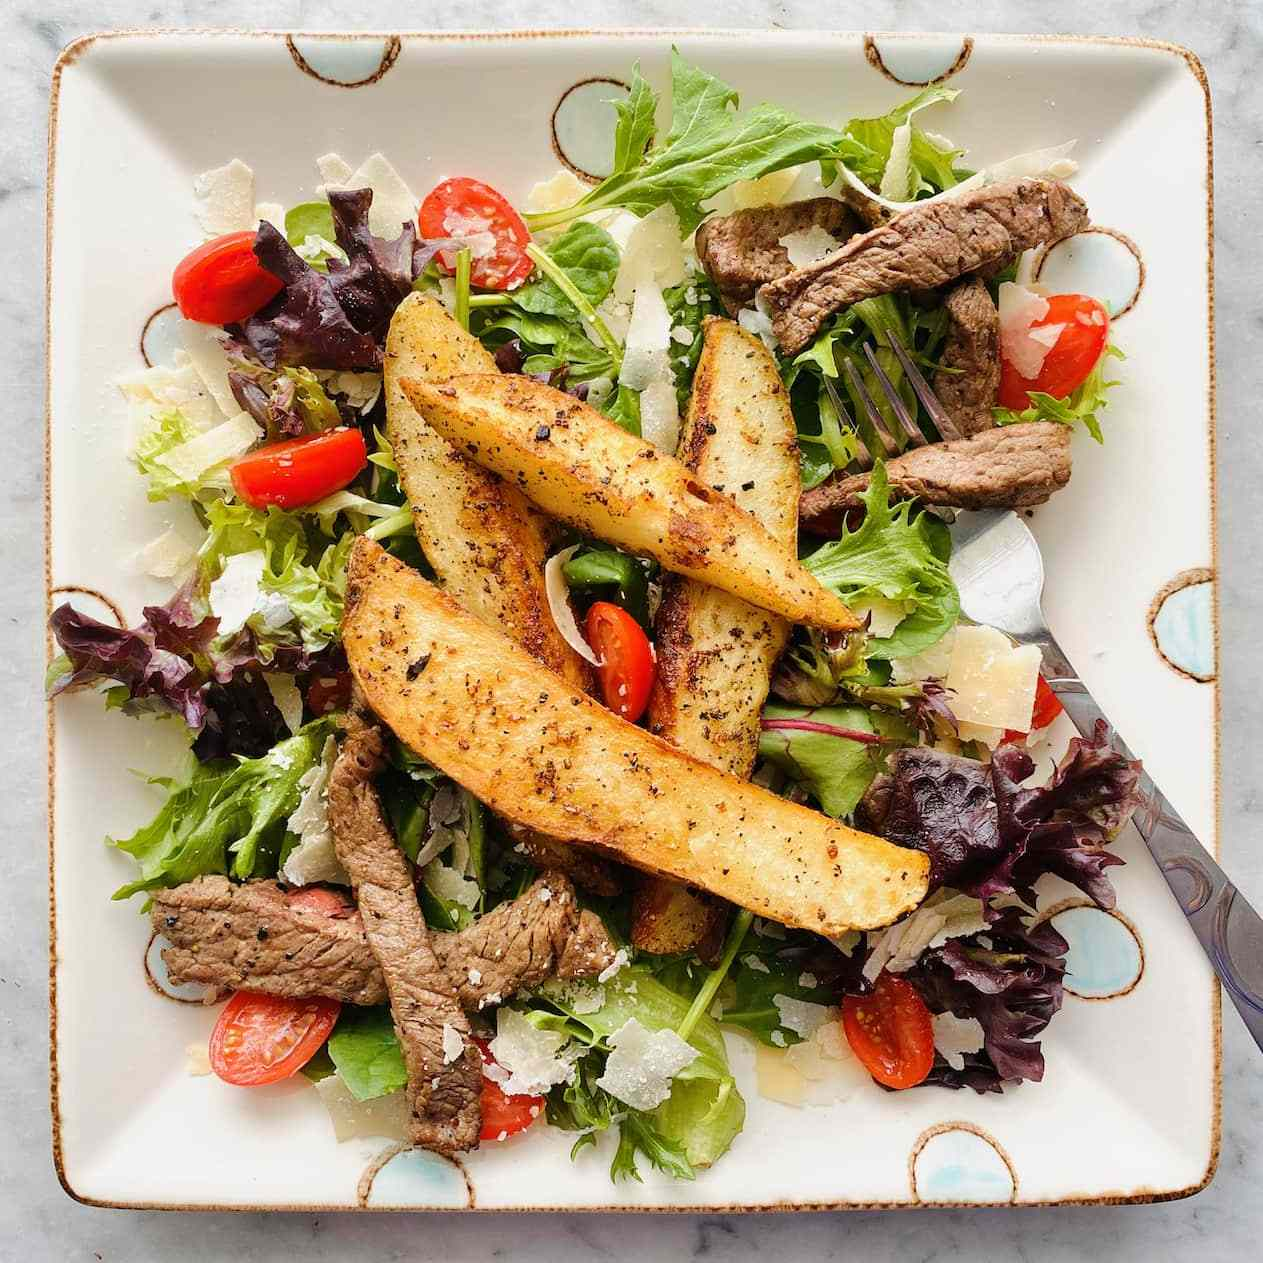 potato and steak salad on a white plate